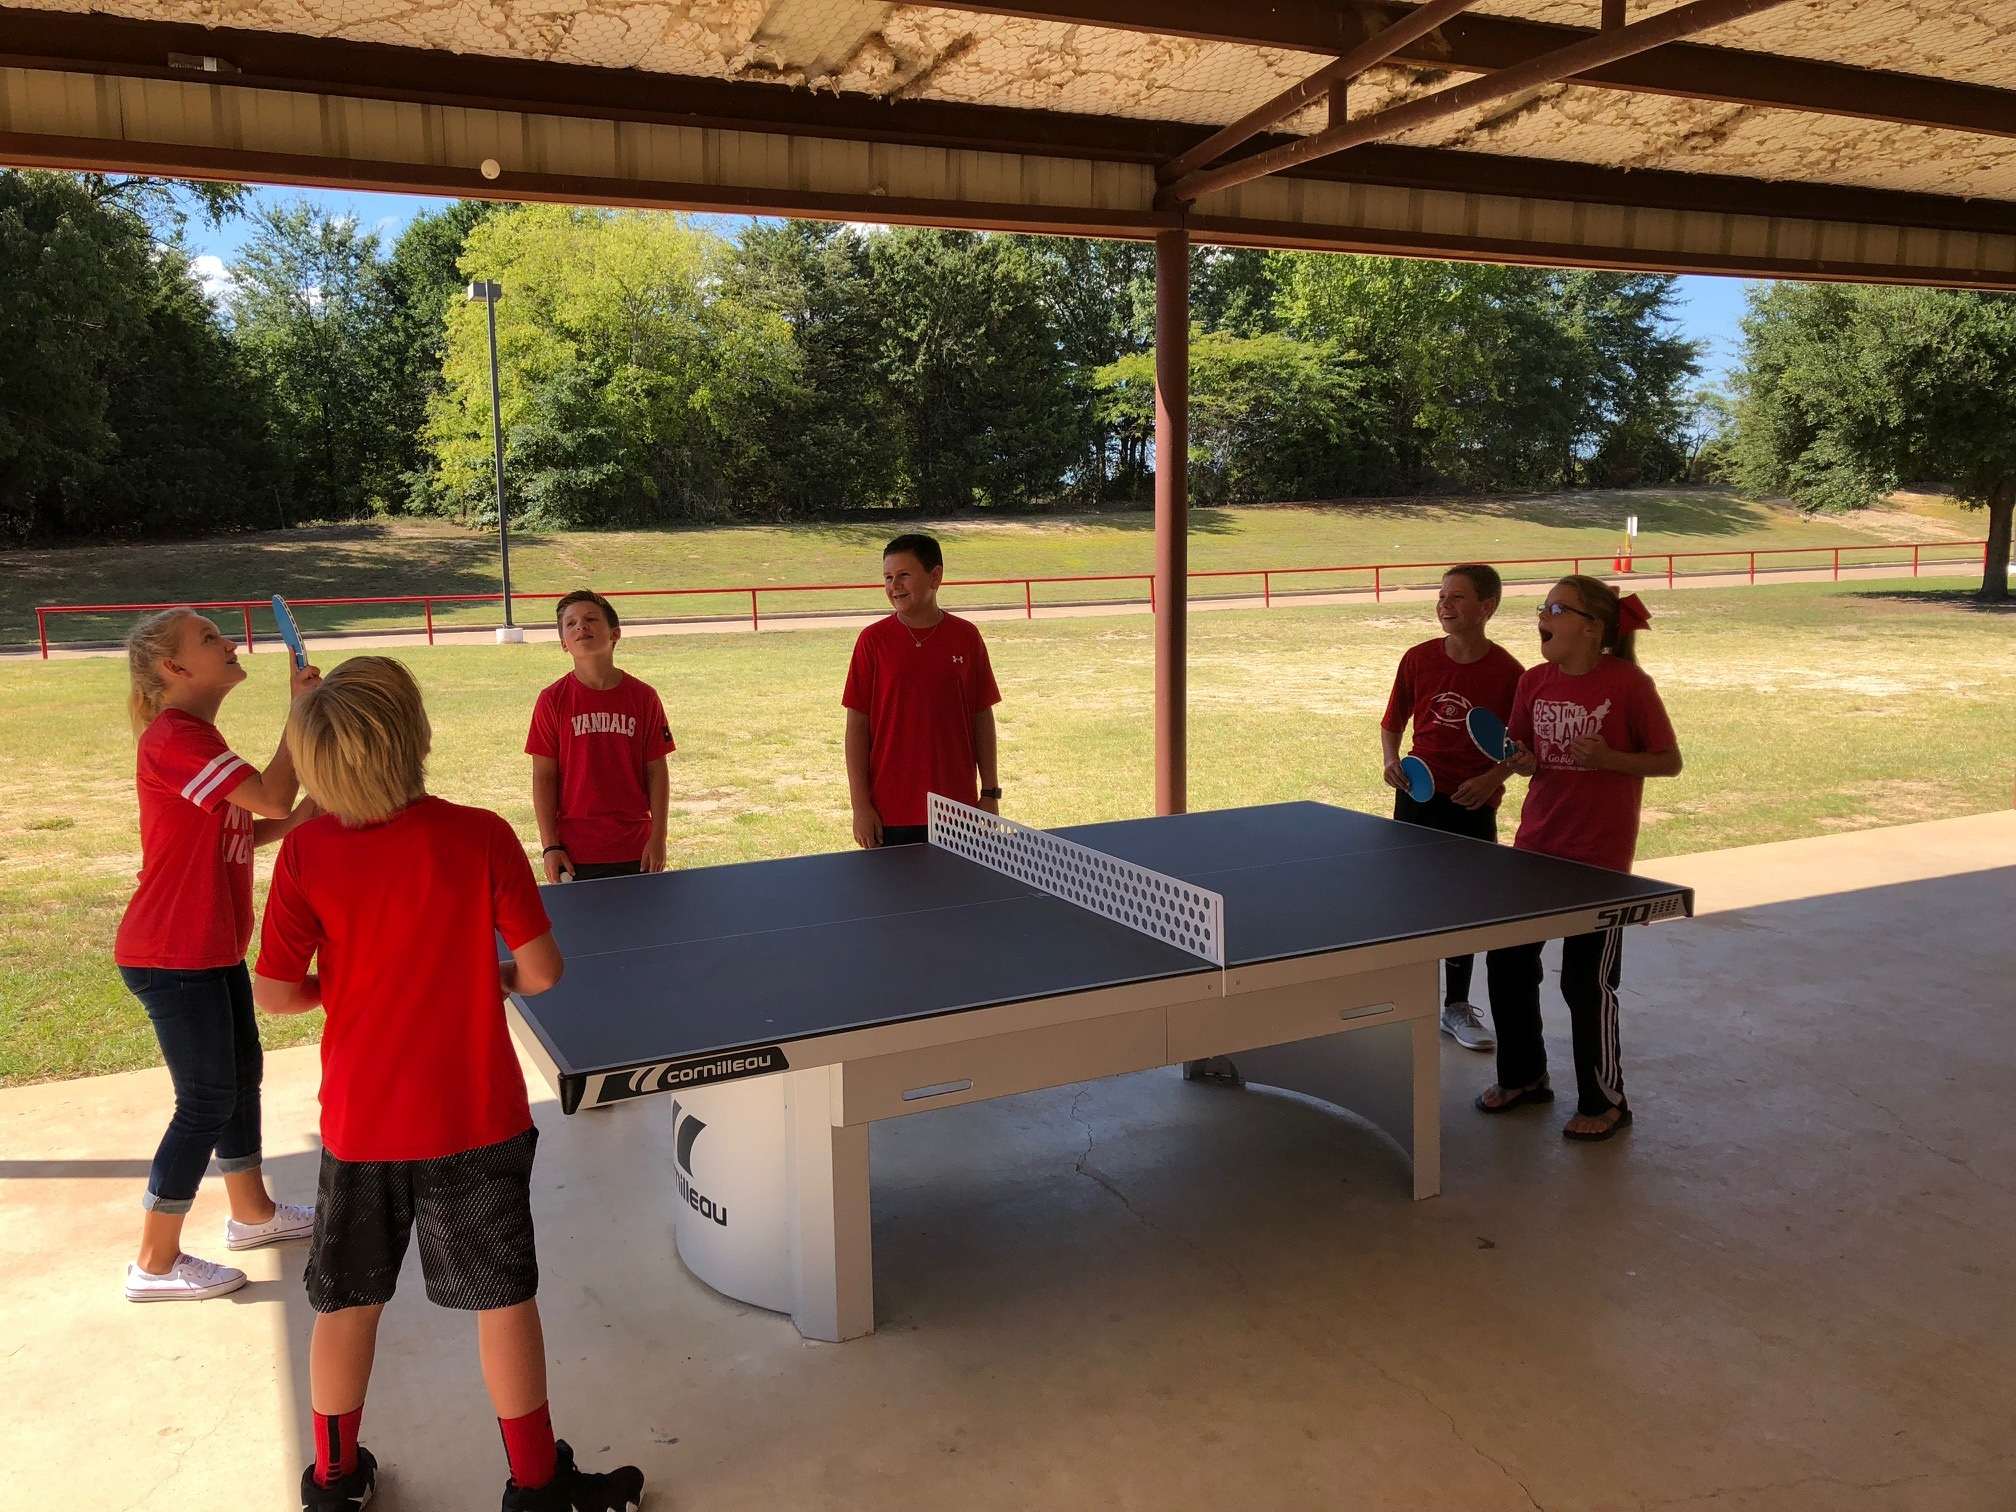 cornilleau 510 ping pong table middle school texas